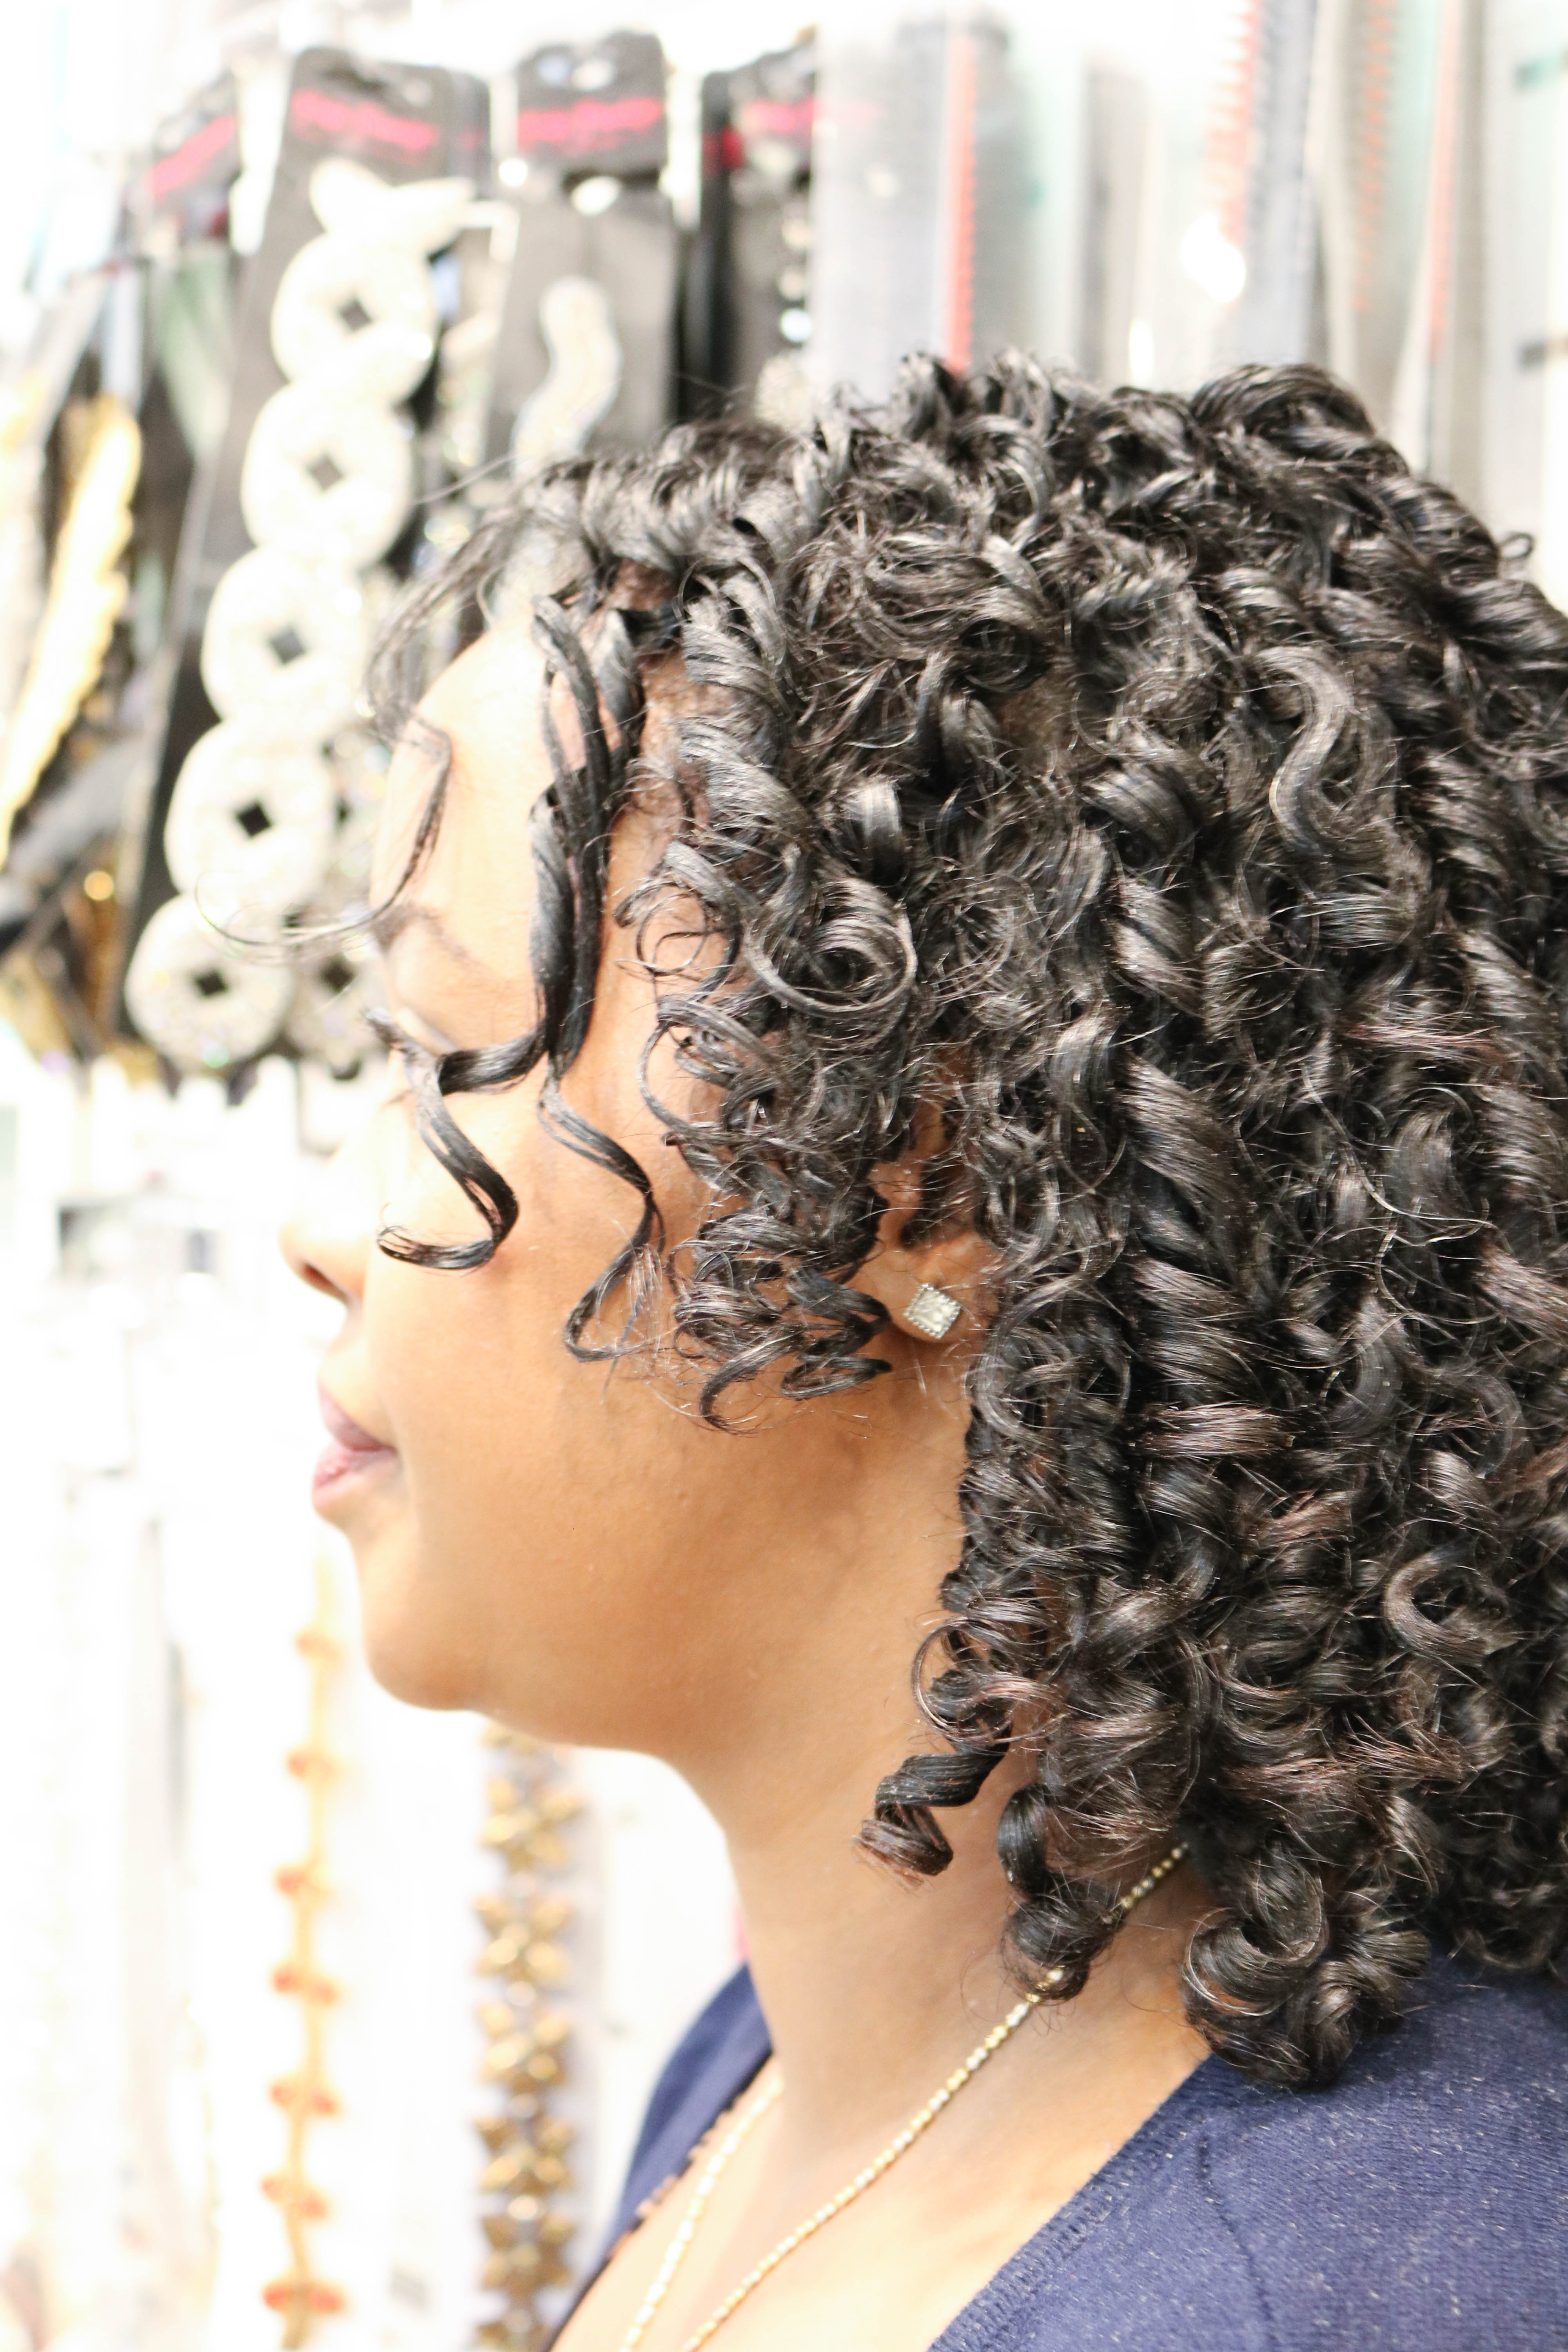 How To Achieve Perfect Curls - Curl Keeper Review | www.styledomination.com